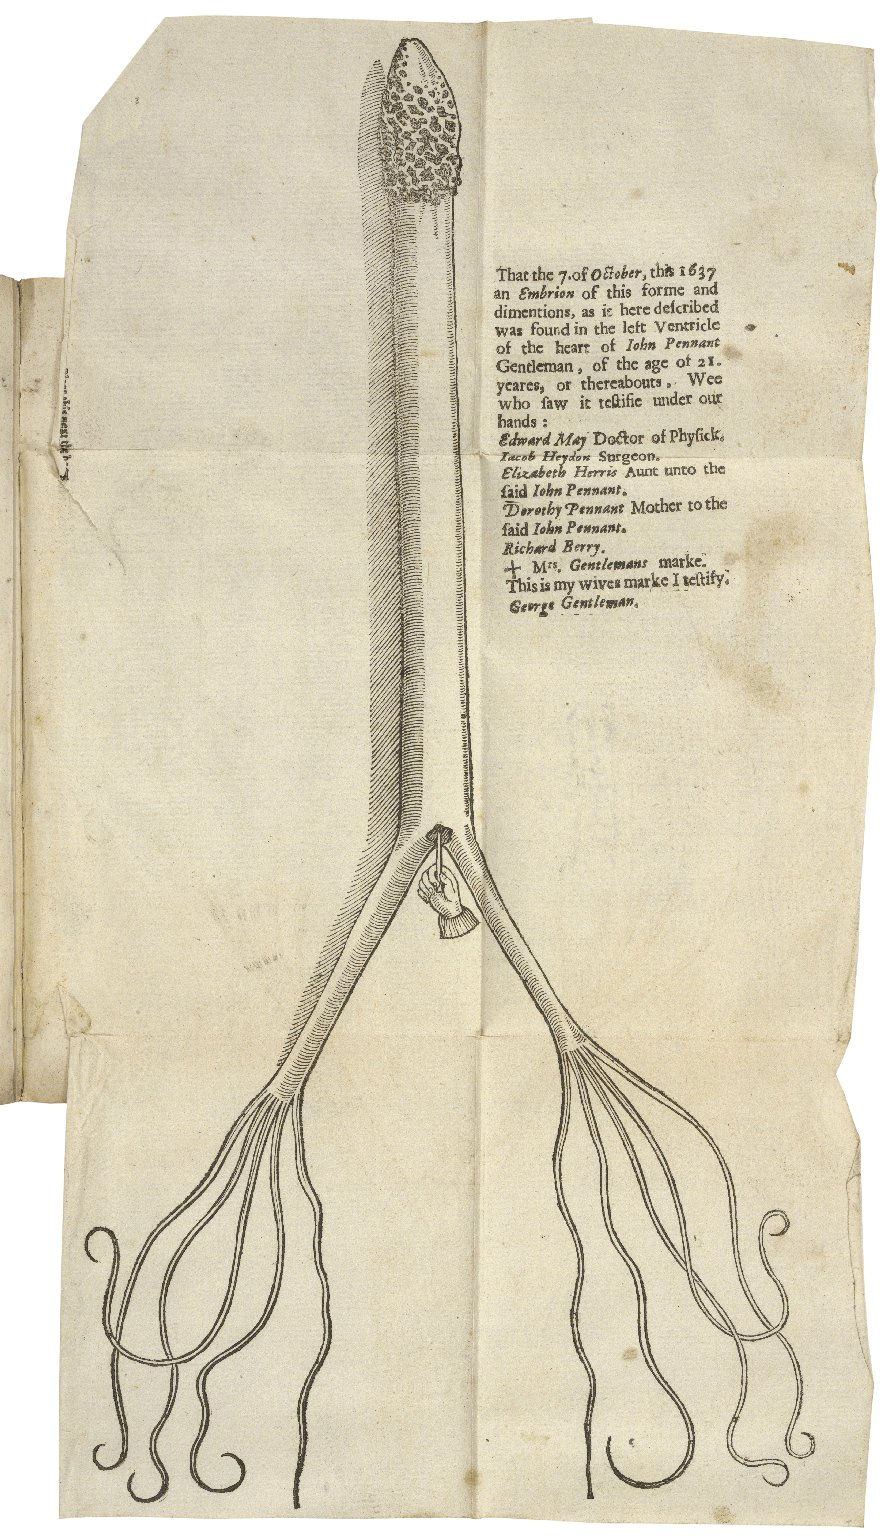 A most certaine and true relation of a strange monster or serpent found in the left ventricle of the heart of Iohn Pennant, Gentleman, of the age of 21. yeares. By Edward May Doctor of Philosophy and Physick, and professor elect of them, in the colledge o